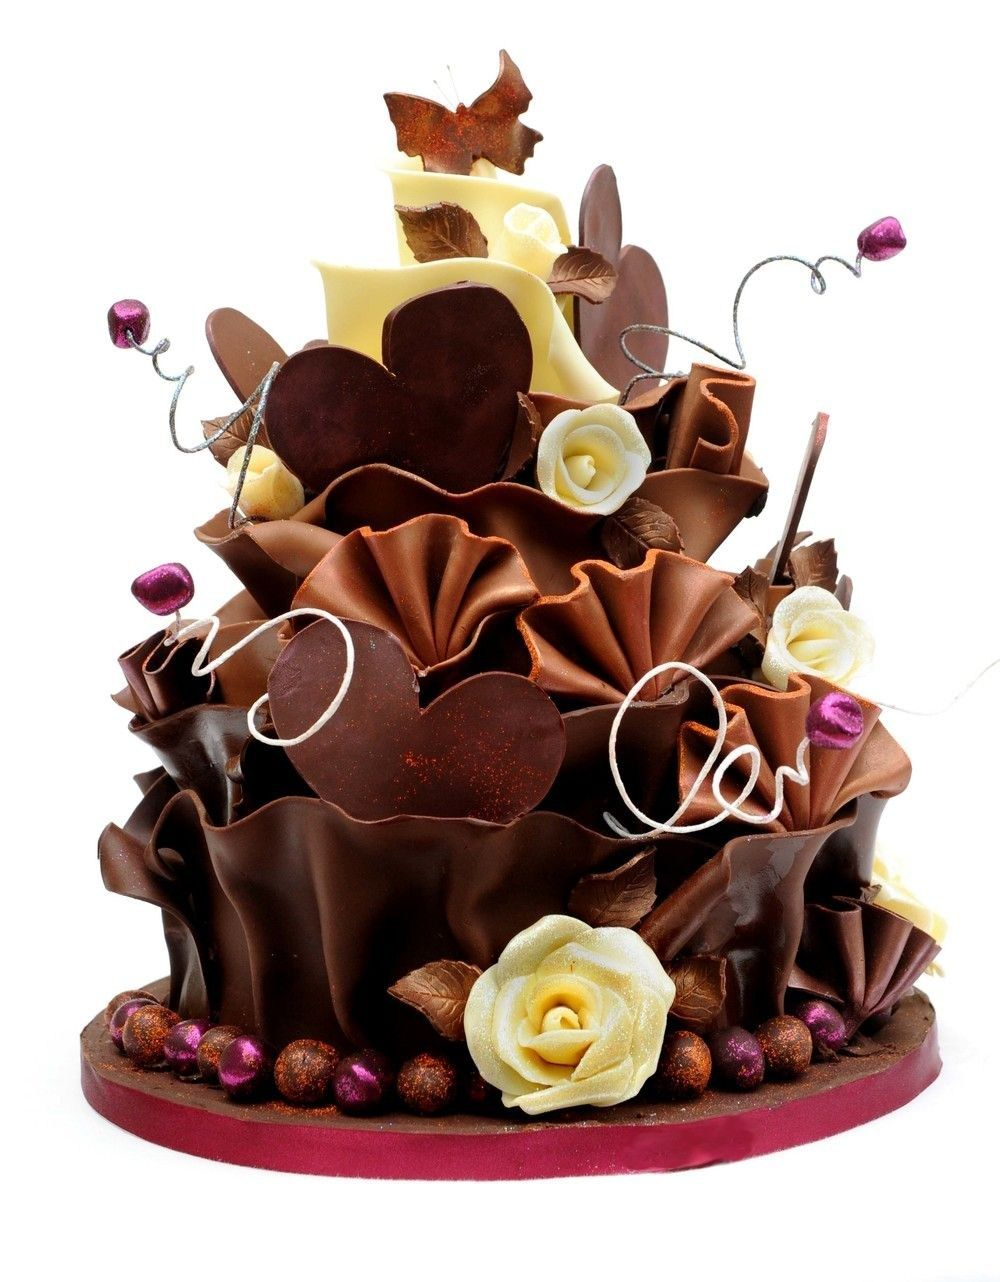 20+ Creative Photo of Beautiful Birthday Cakes (With images ...